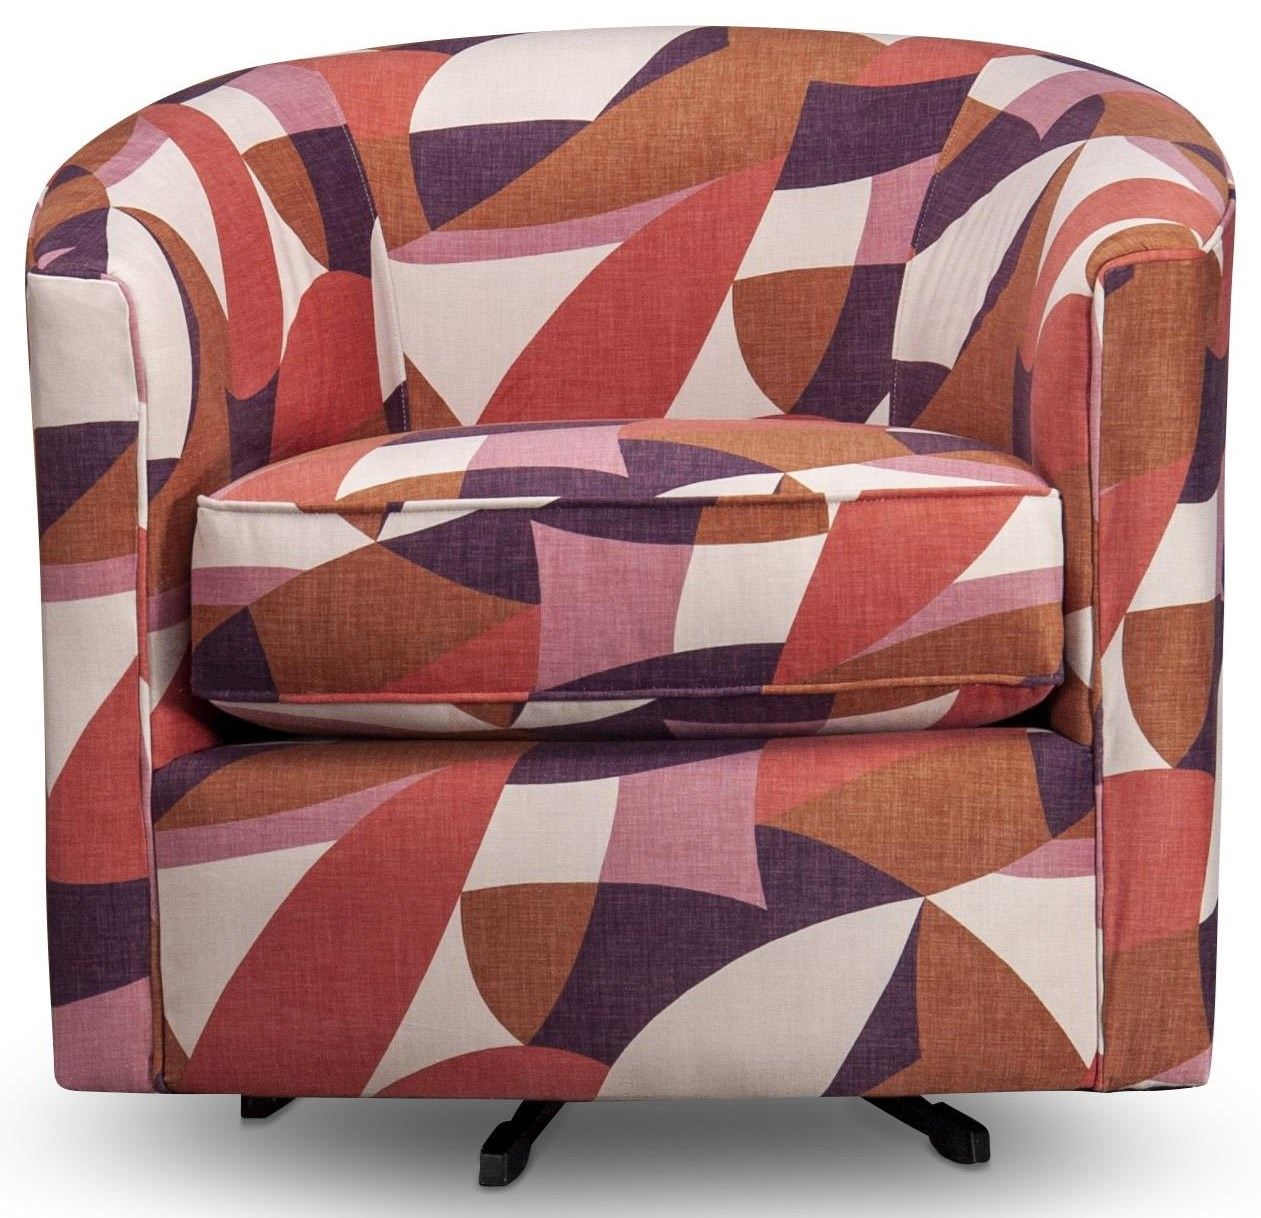 Petra Petra Swivel Chair by Craftmaster at Morris Home